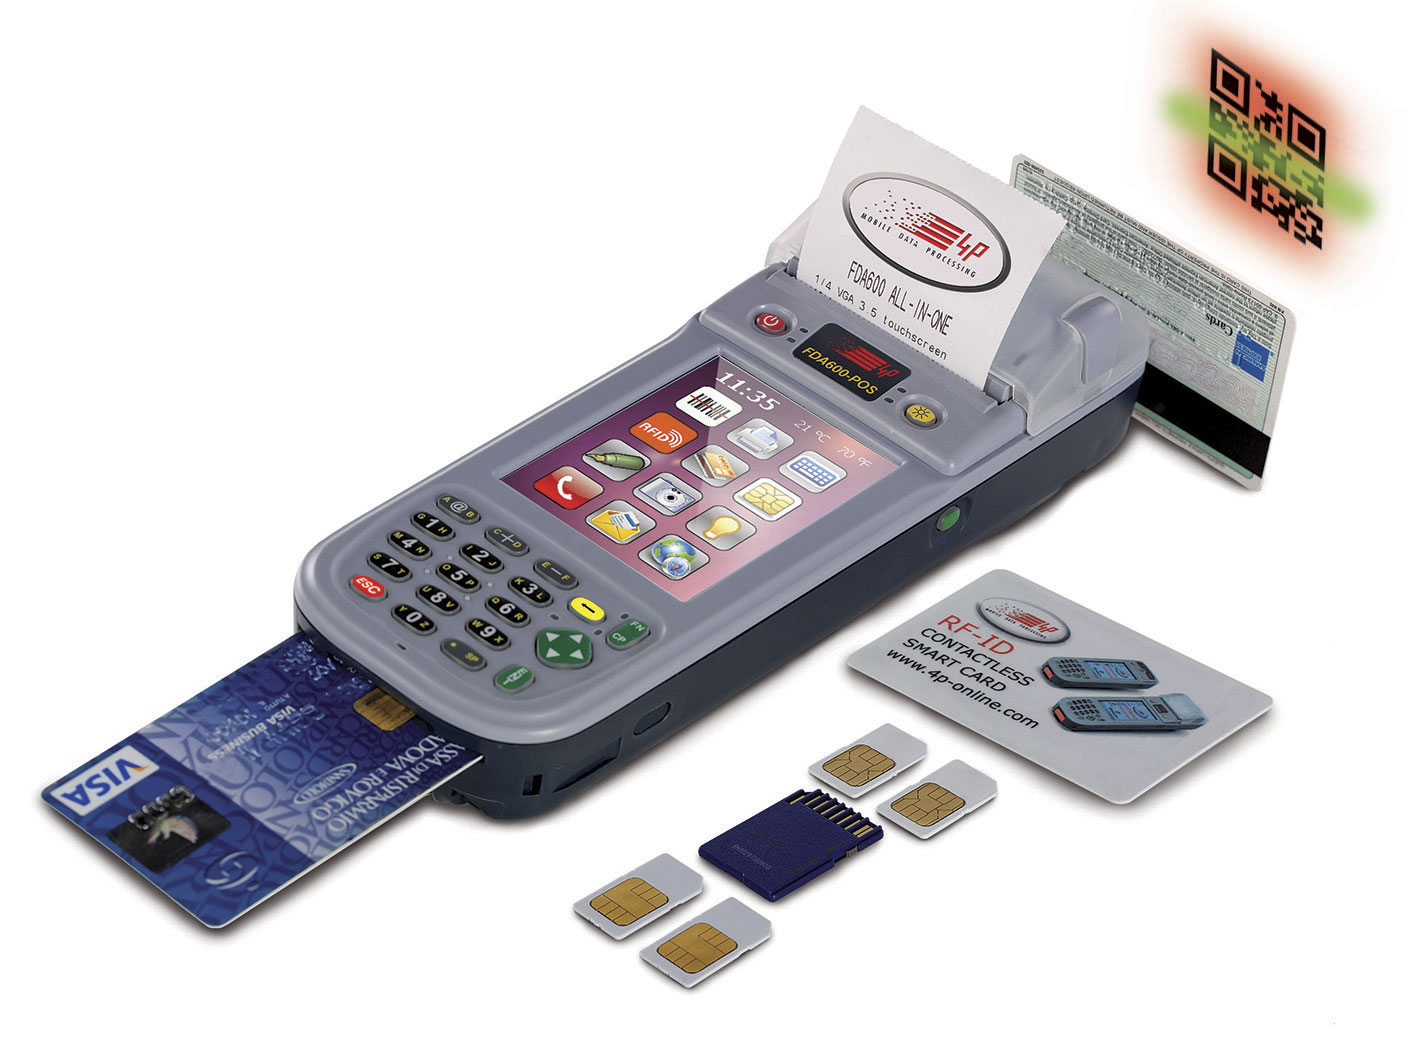 FDA600-POS ALL IN ONE printer PDA with embedded EFTPOS for cashless payments